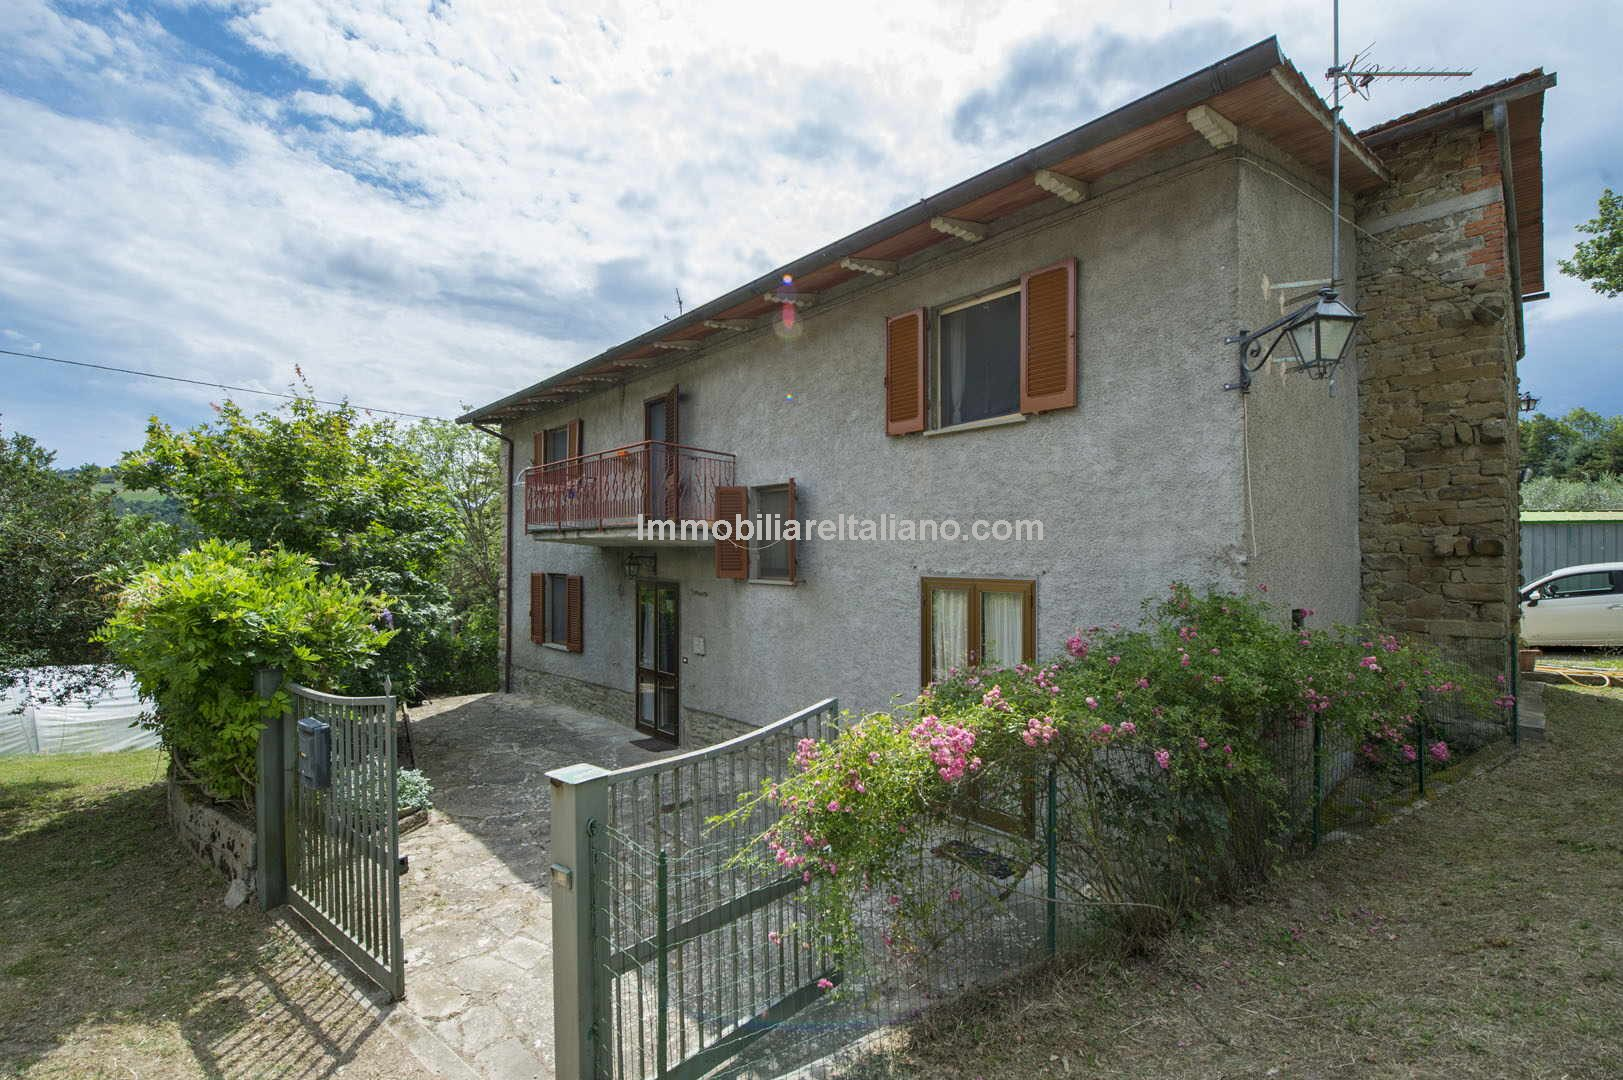 Nice fixer upper with land for sale near to Anghiari and Sansepolcro in Tuscany